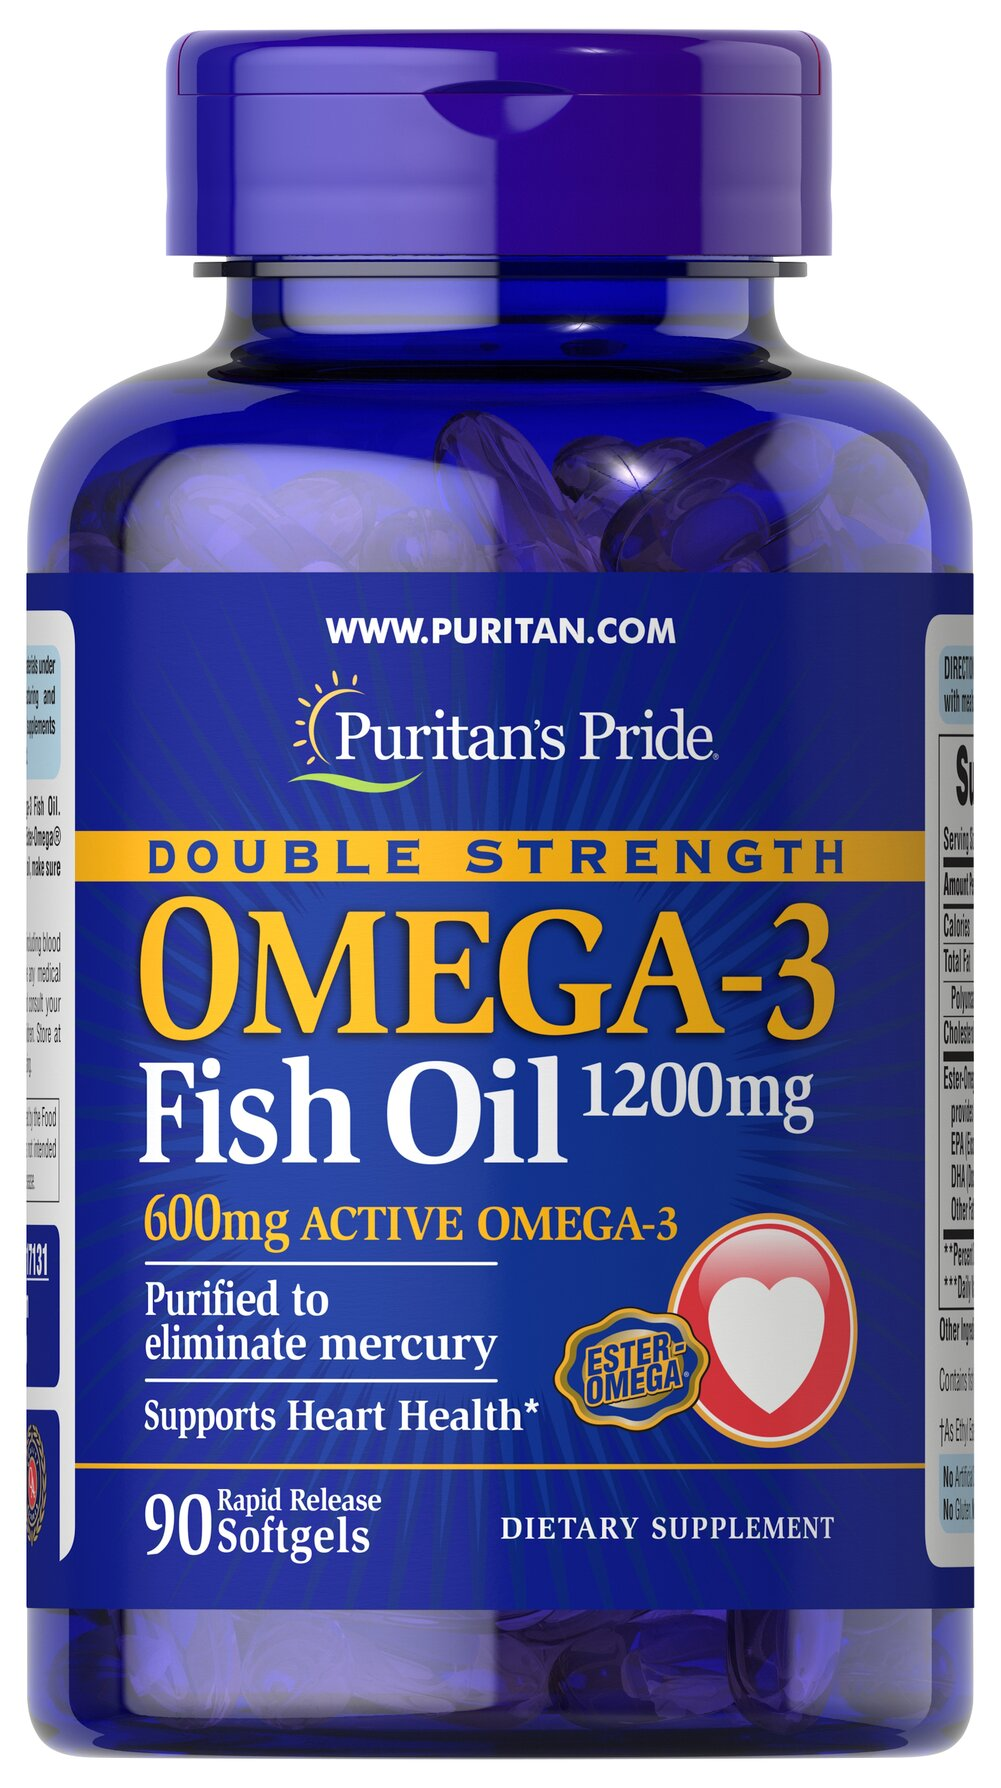 Double Strength Omega-3 Fish Oil 1200mg <p><span></span>Provides 768 mg of Active Omega-3.</p><p><span></span>Omega-3 fatty acids are important for heart health.**</p><p><span></span>Purified to eliminate mercury.</p><p>Each double strength Omega-3 fish oil softgel contains 1200mg of Ester-Omega® Fish Oil. This provides 768 mg of Total Omega-3 Fatty Acids comprising of DHA, EPA and other fatty acids. Supportive bu